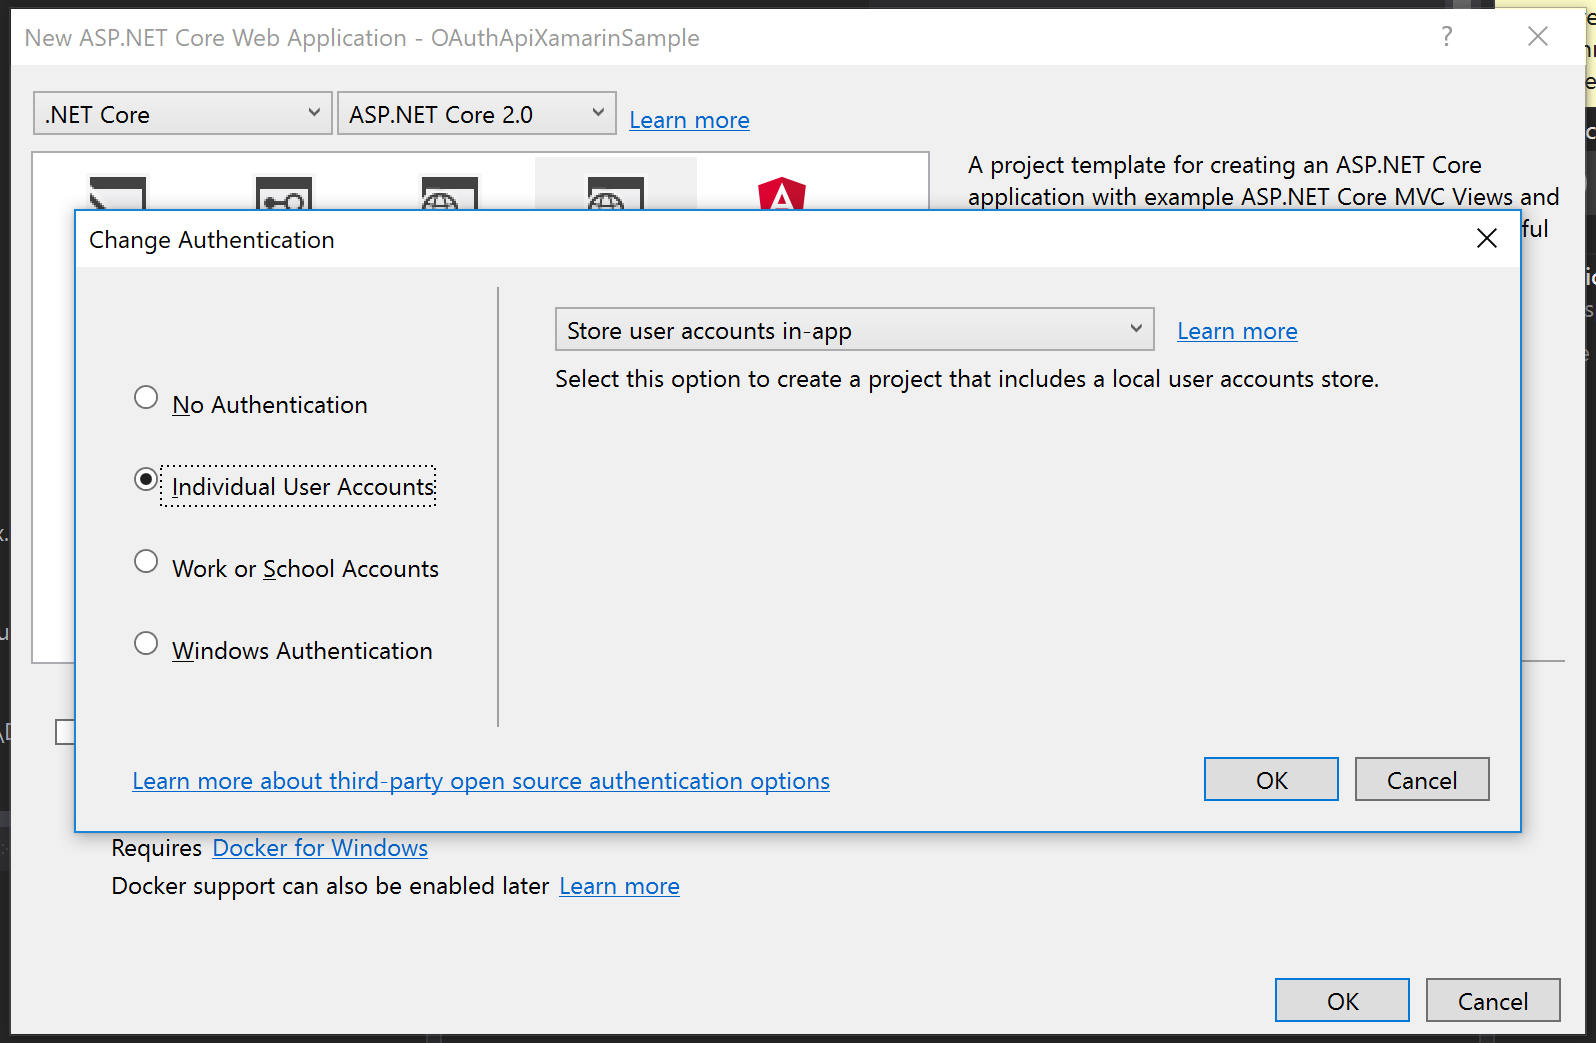 The Change Authentication dialog